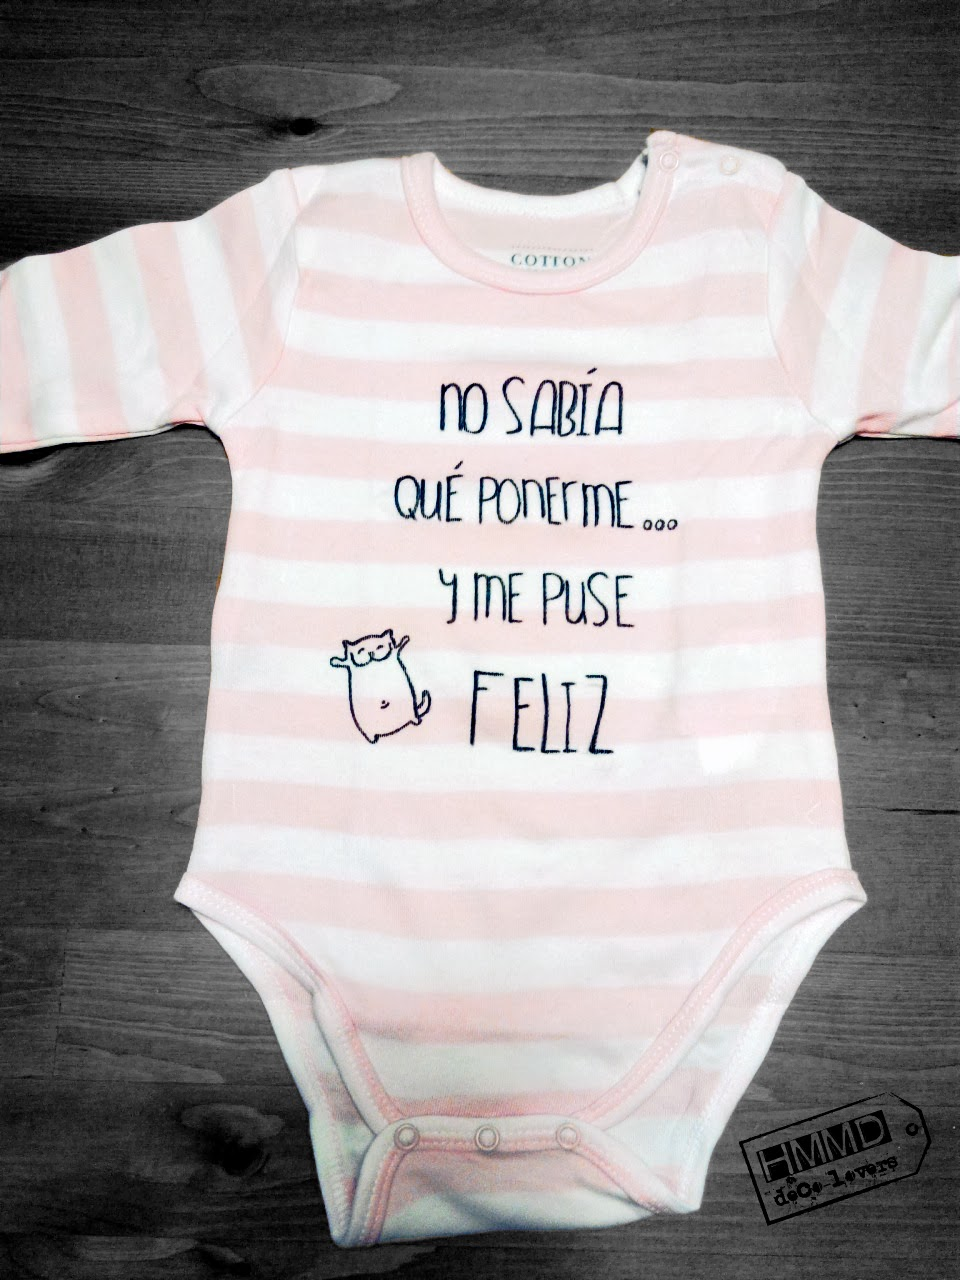 Bodys para bebés con ilustración de la Guerra de las galaxias, frases optimistas y gatos sonrientes. Imágenes tiernas para ropa de bebé. Ropita original y creativa para bebés. Stars war onesies for babies, cats and positive phrases, HMMD, Handmademaniadecor